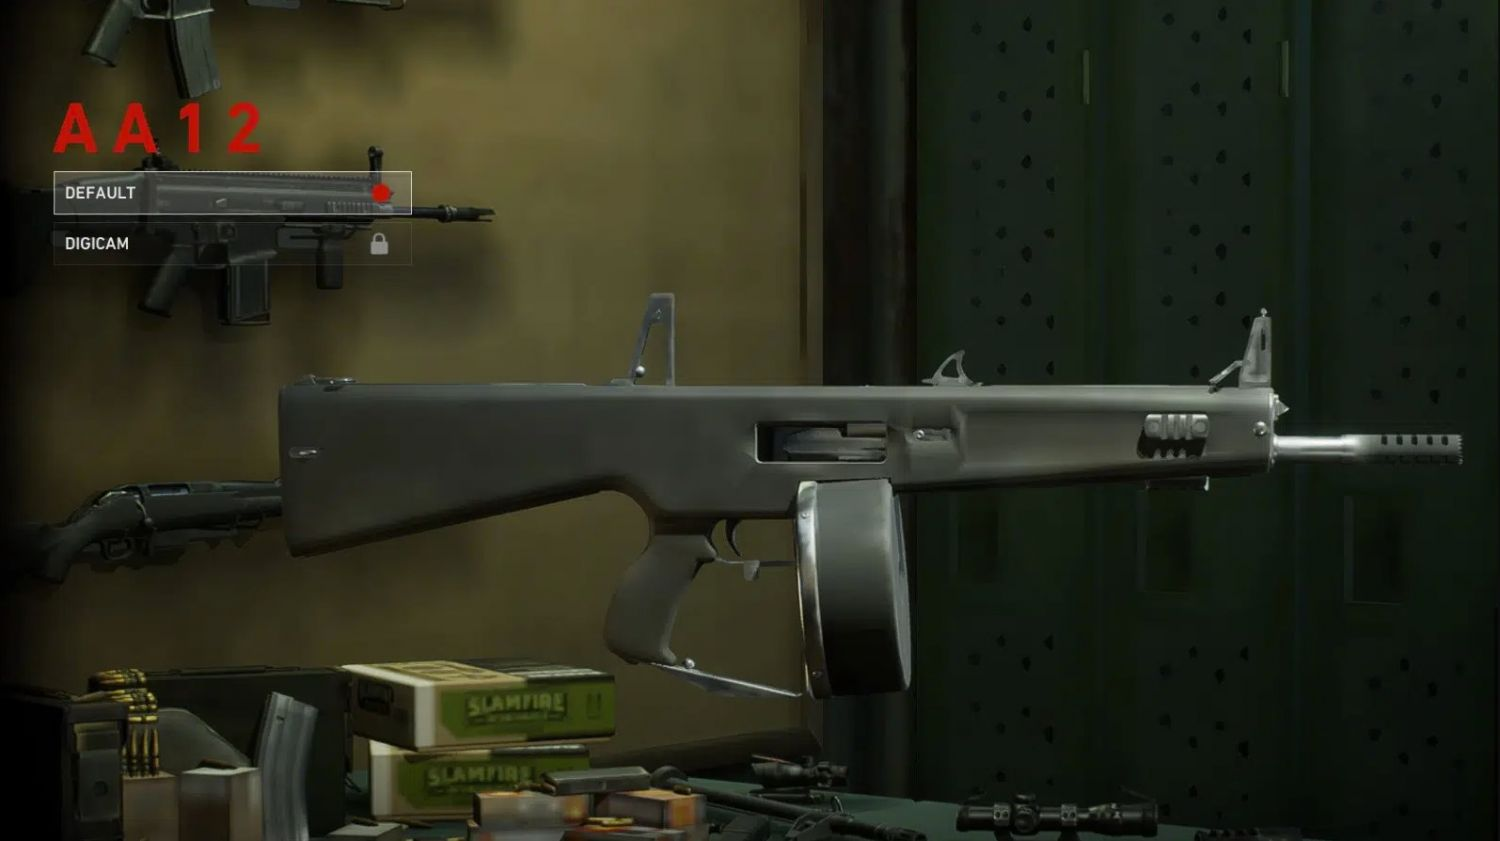 Back 4 Blood – Best Weapons Guide - AA12